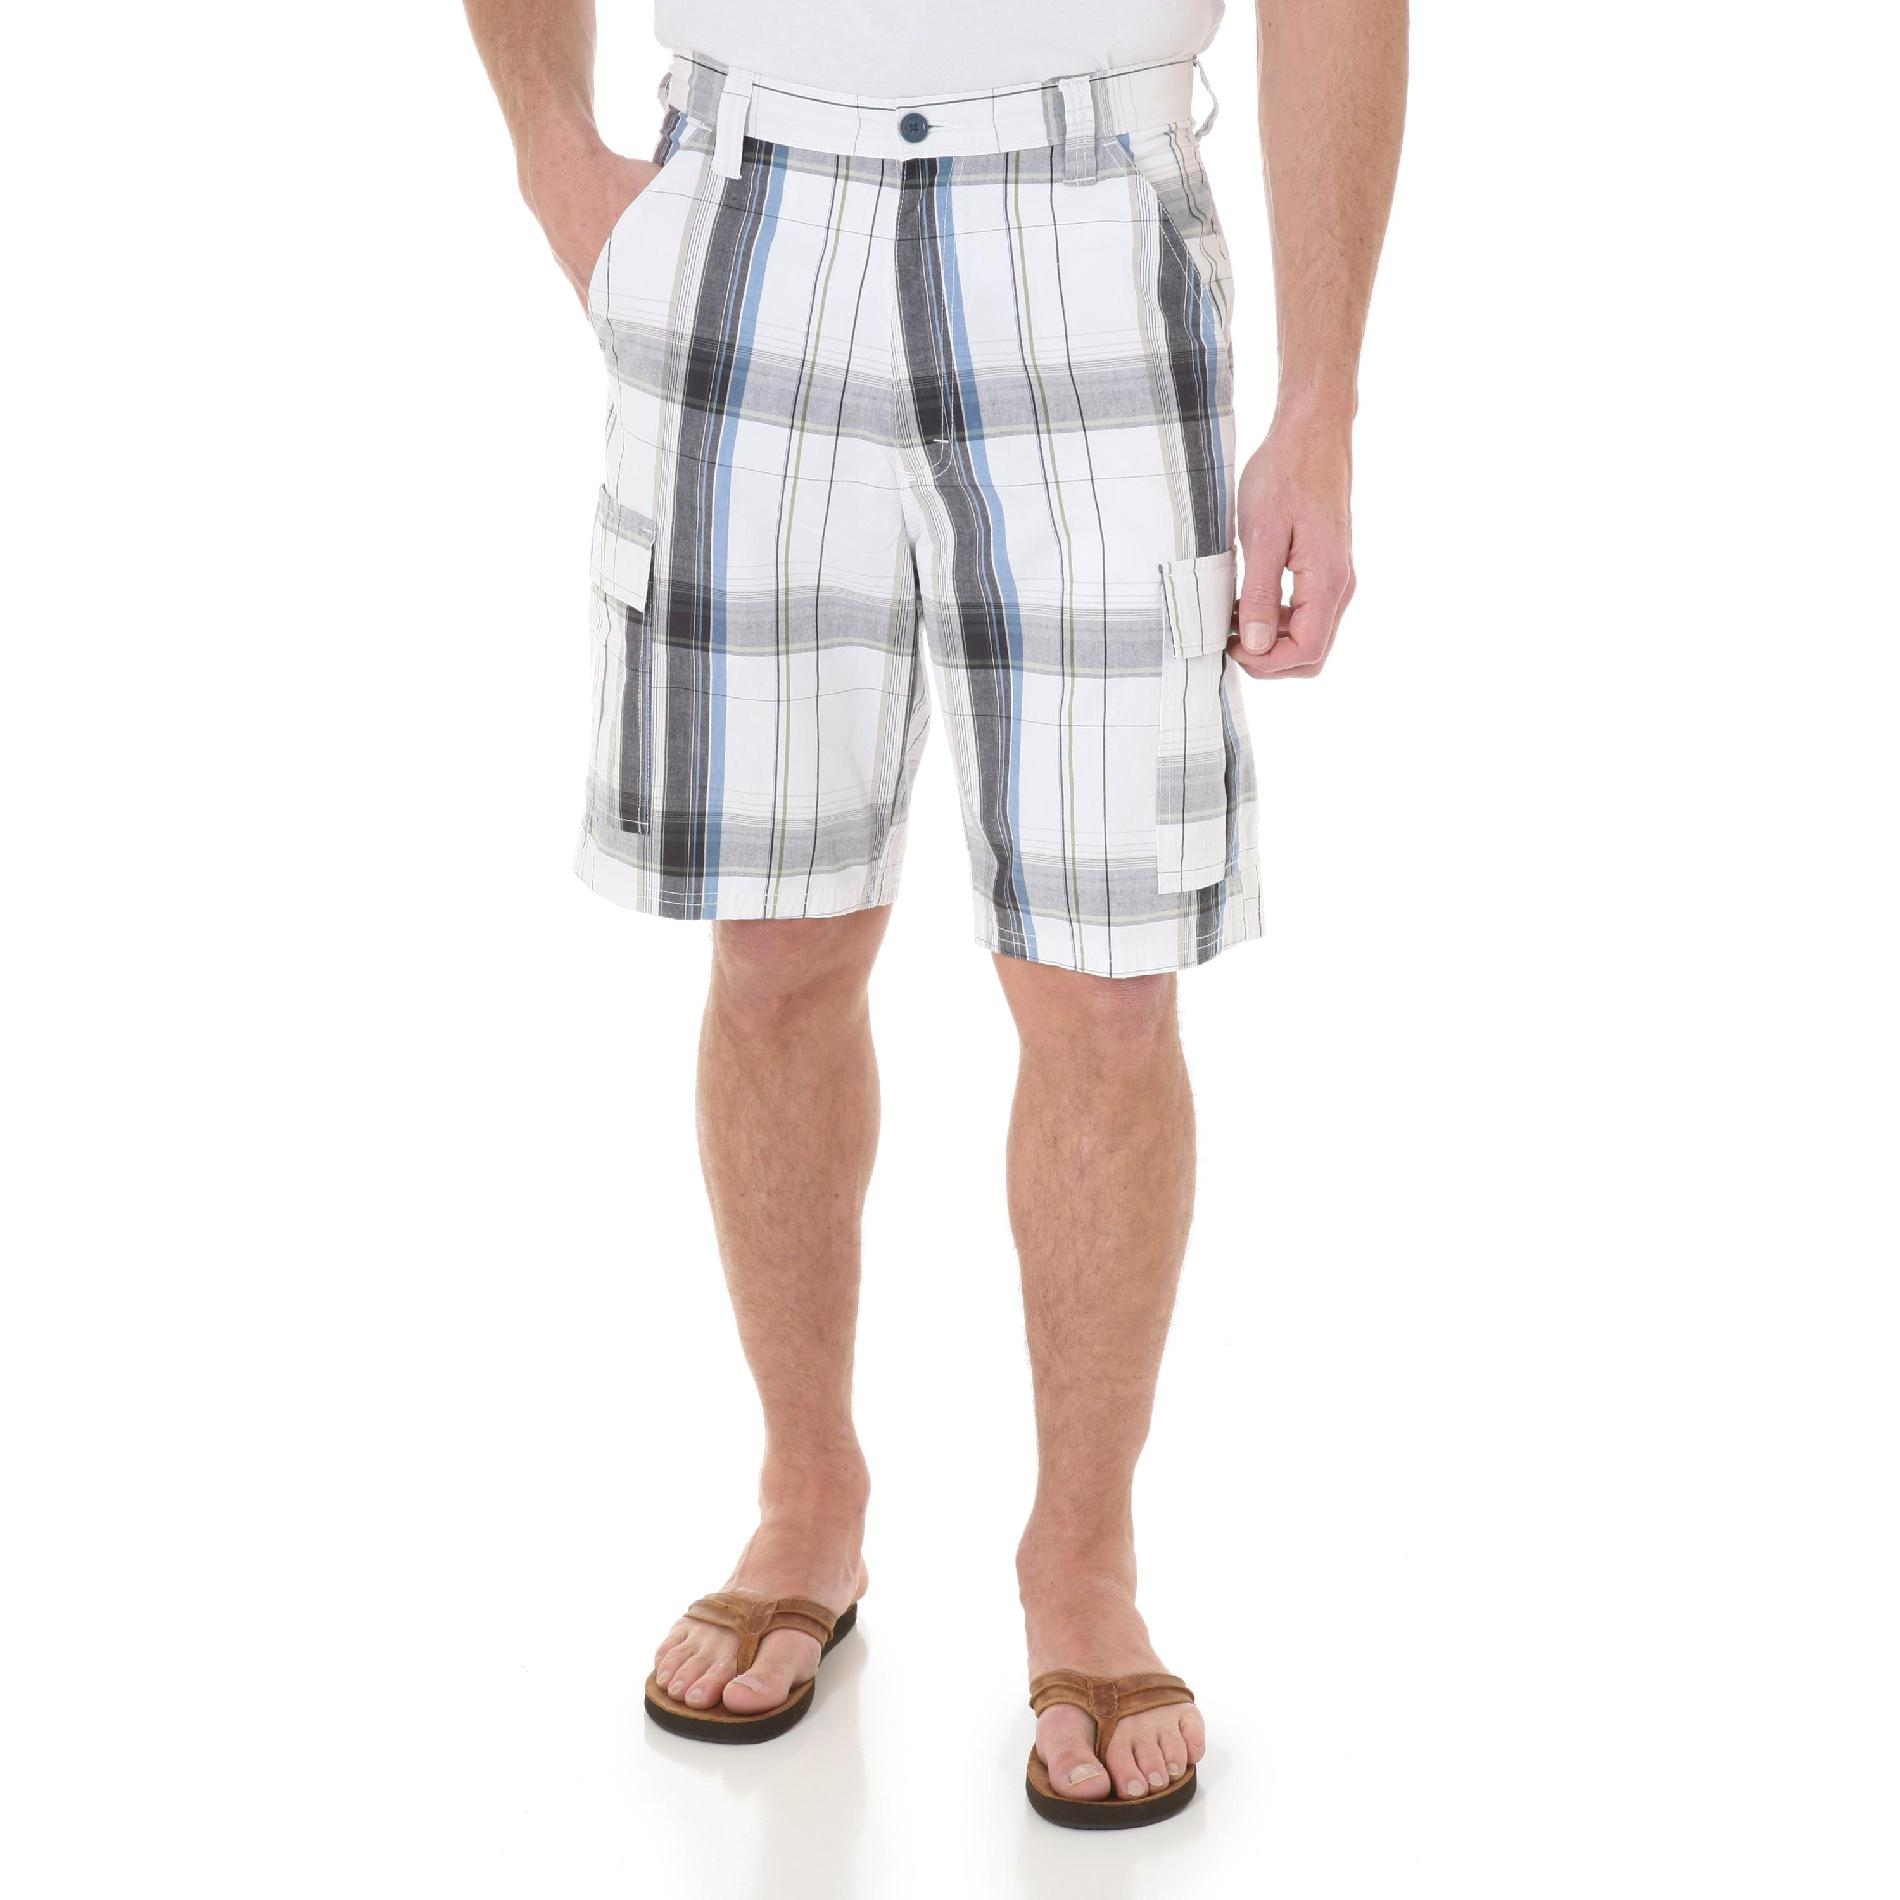 Wrangler  Men's Big & Tall Shorts - Plaid